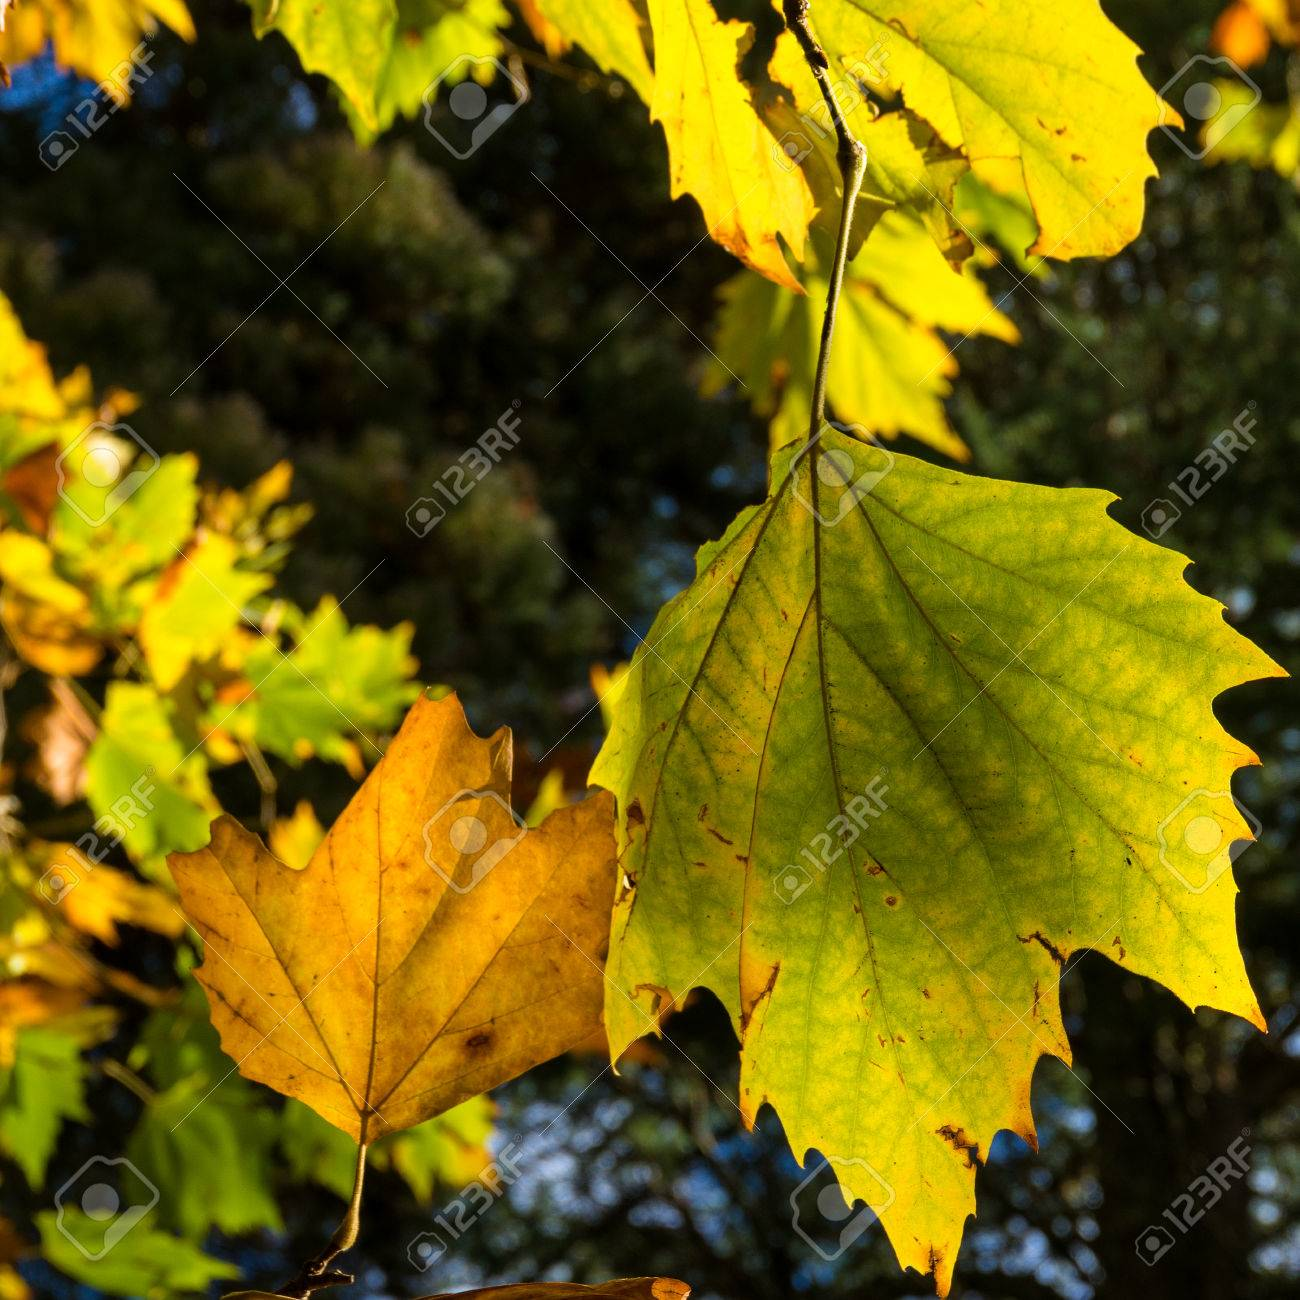 autumn yellow canadian maple leaves background. bright fall foliage